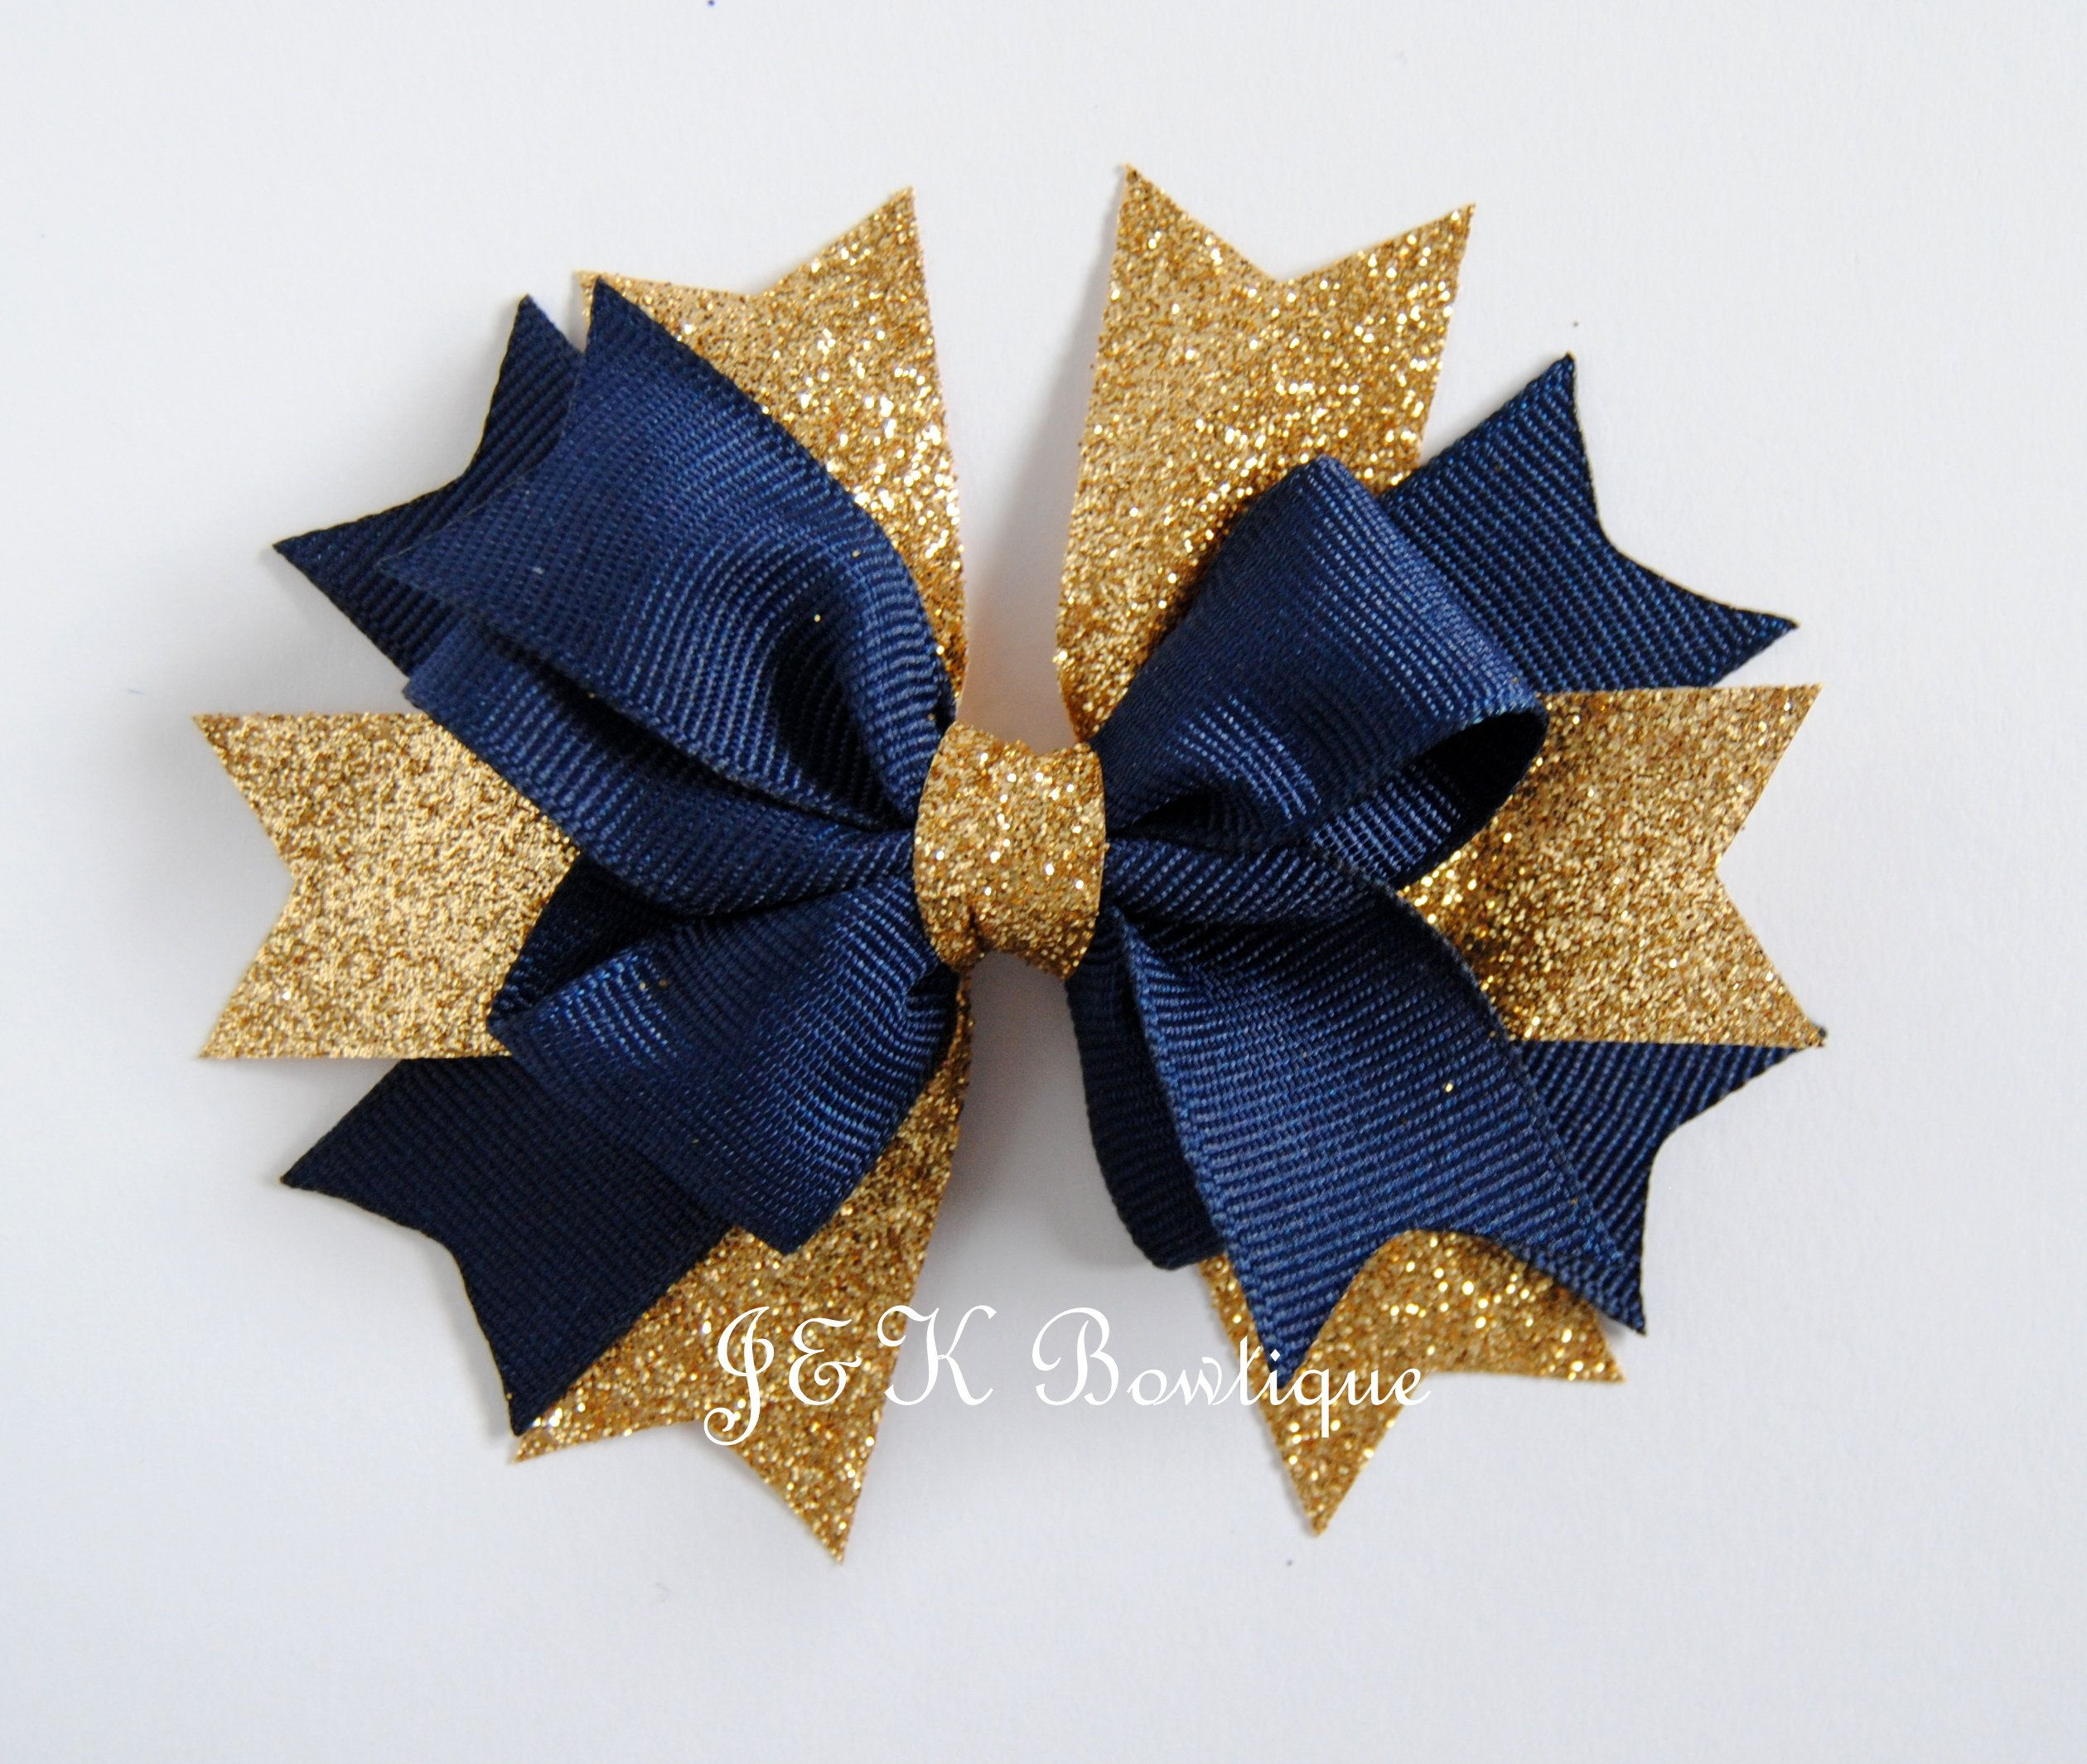 baby hair bows yellow hair bows baby headbands leather knot hair bow toddler hair clips navy hair bows Fall faux Leather hair bows